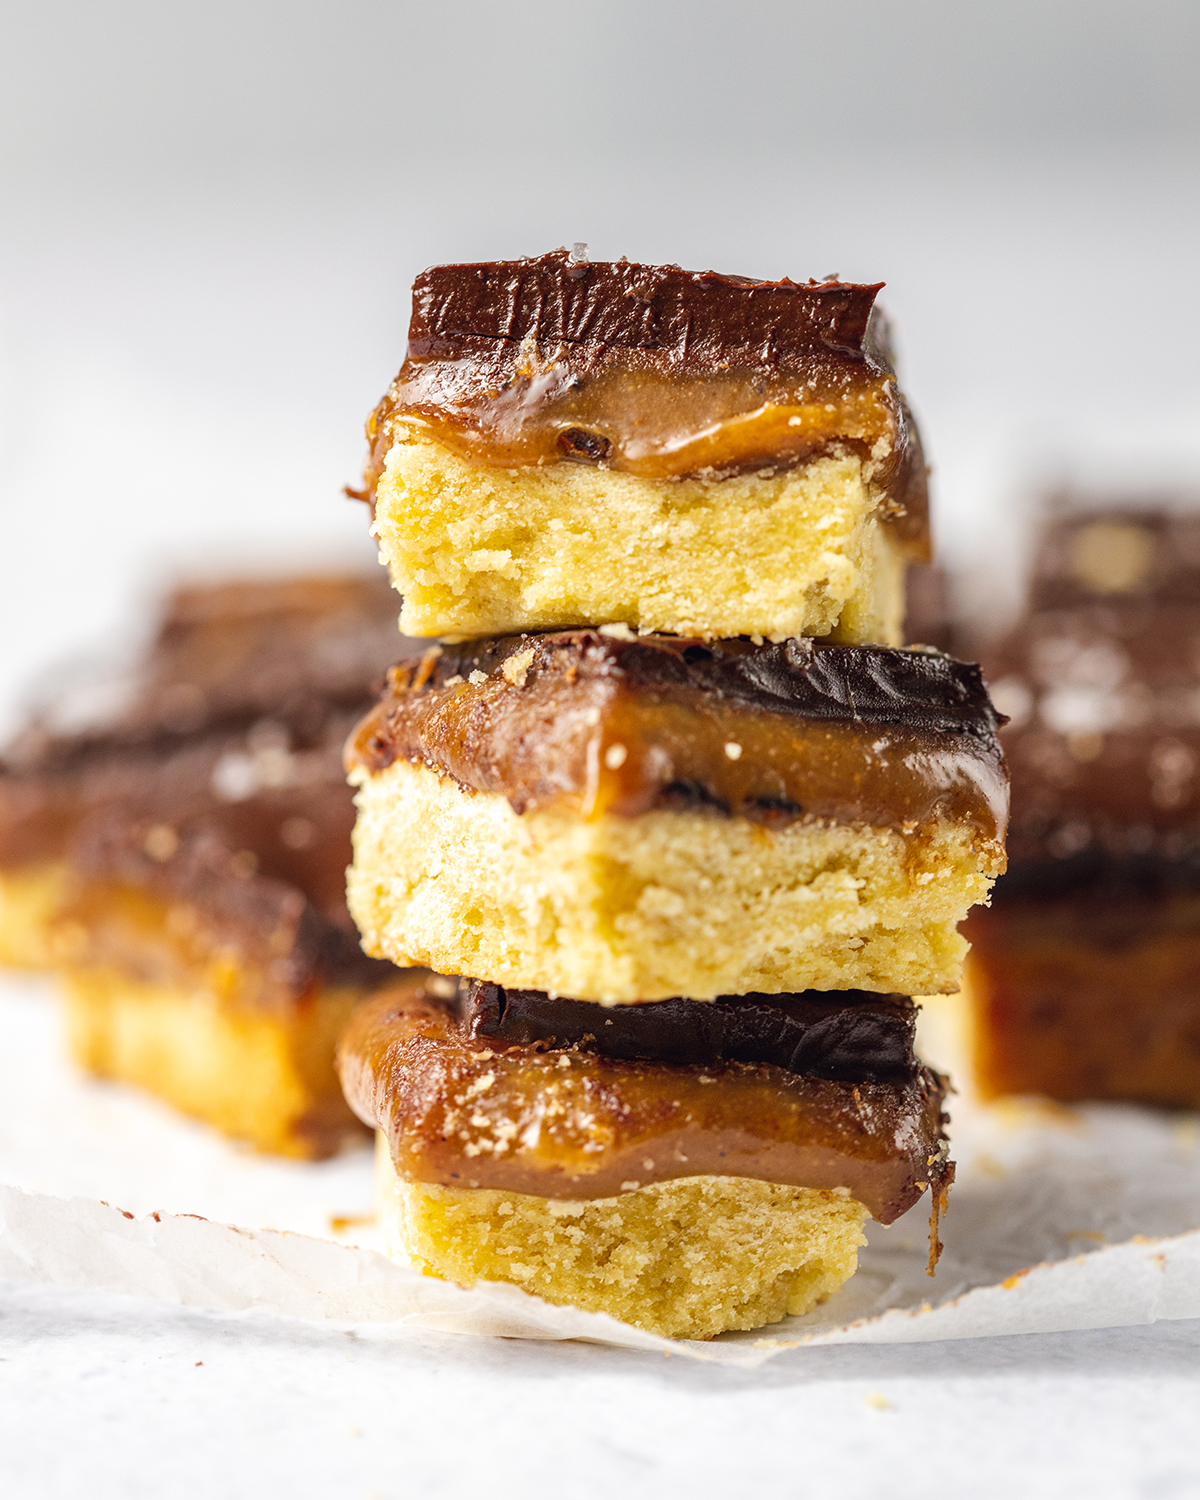 Deliciously sweet and gooey Vegan Millionaire Shortbread, created with a vegan shortbread base and tasty salted caramel made from almond butter - that's next level snacking! #shortbread #veganrecipe #millionaire #saltedcaramel